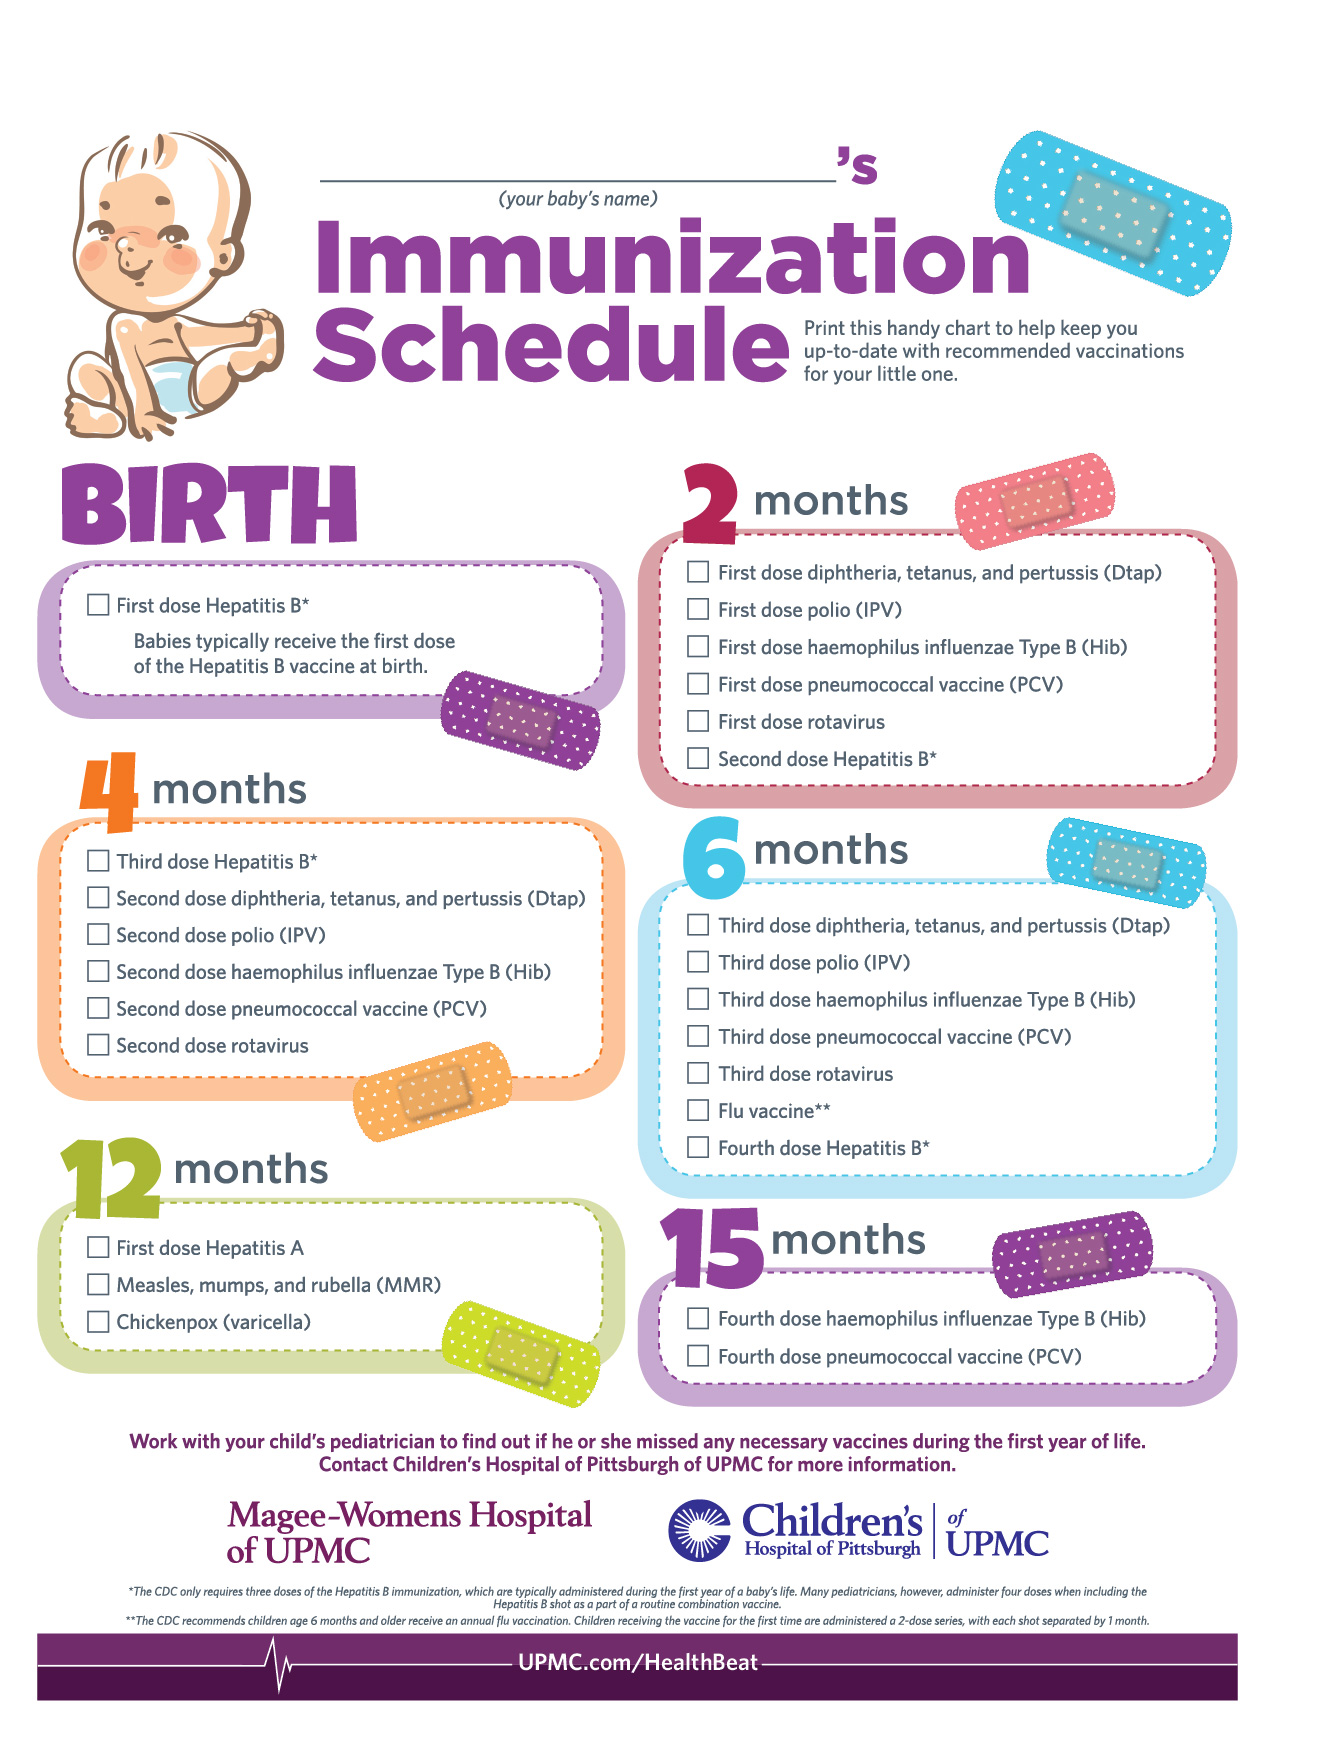 Pdf Version Of The Immunization Schedule For Print